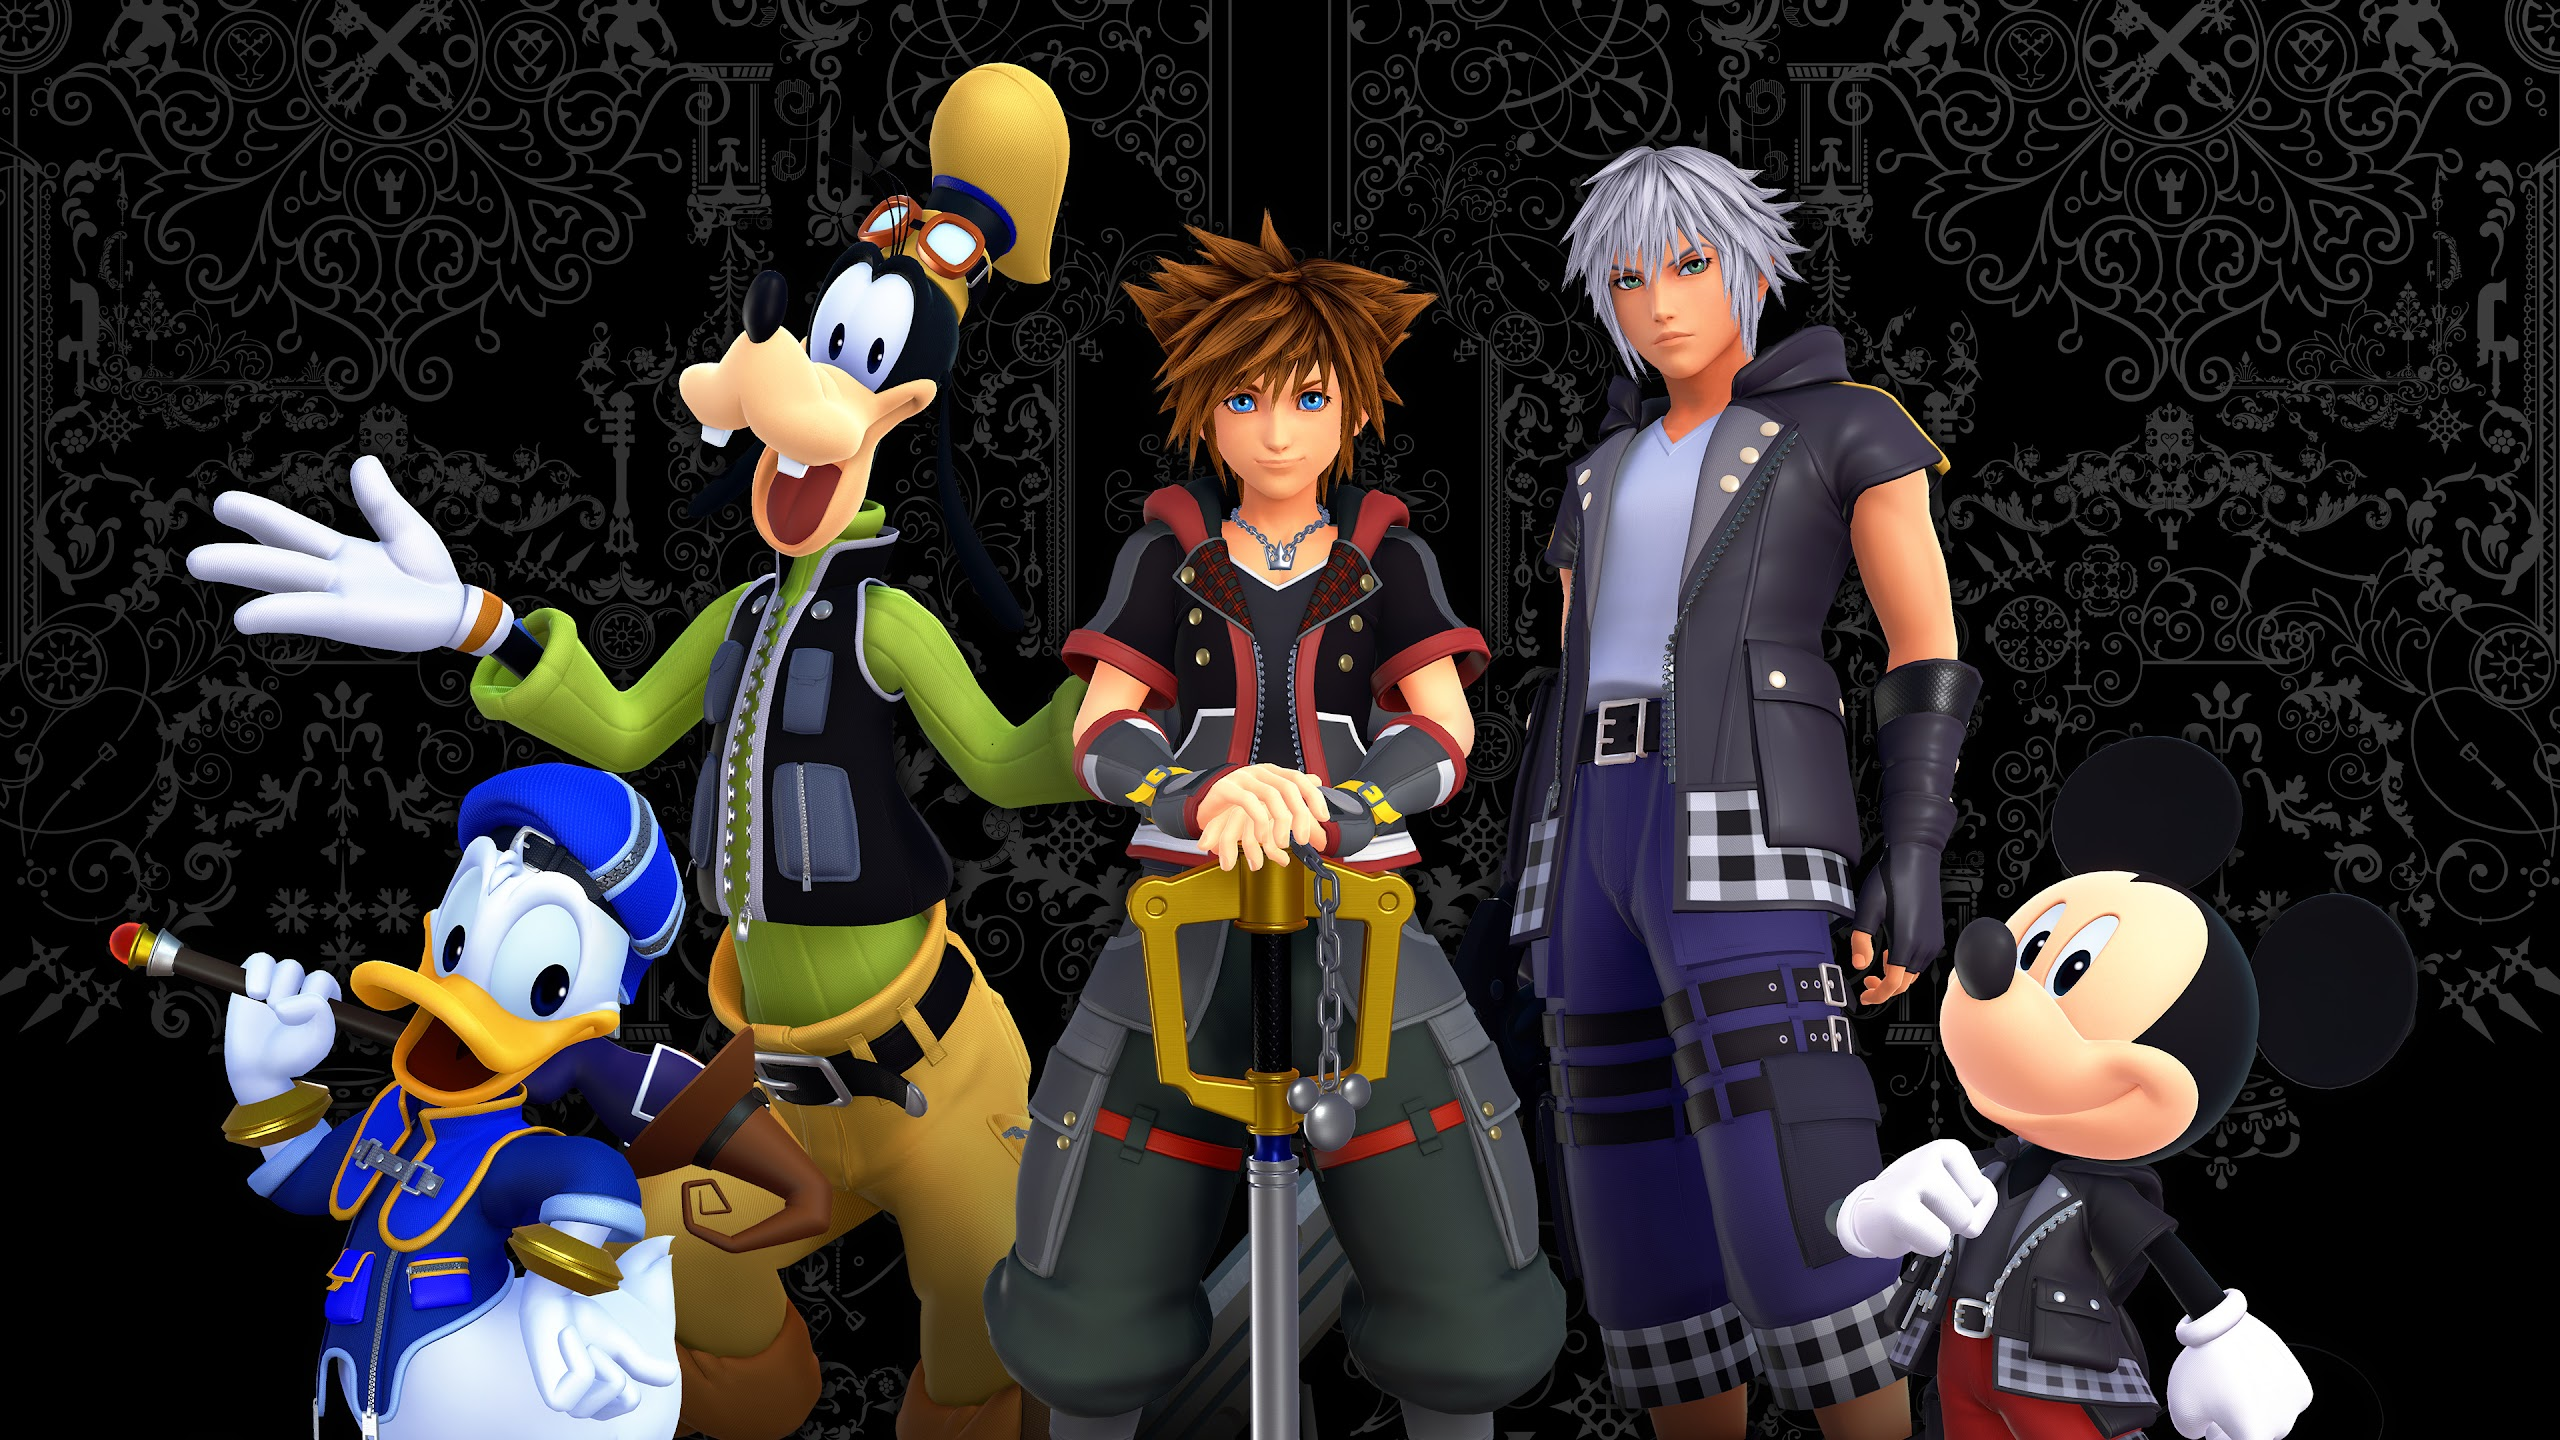 Kingdom Hearts 3 Characters 4k 3840x2160 Wallpaper 13